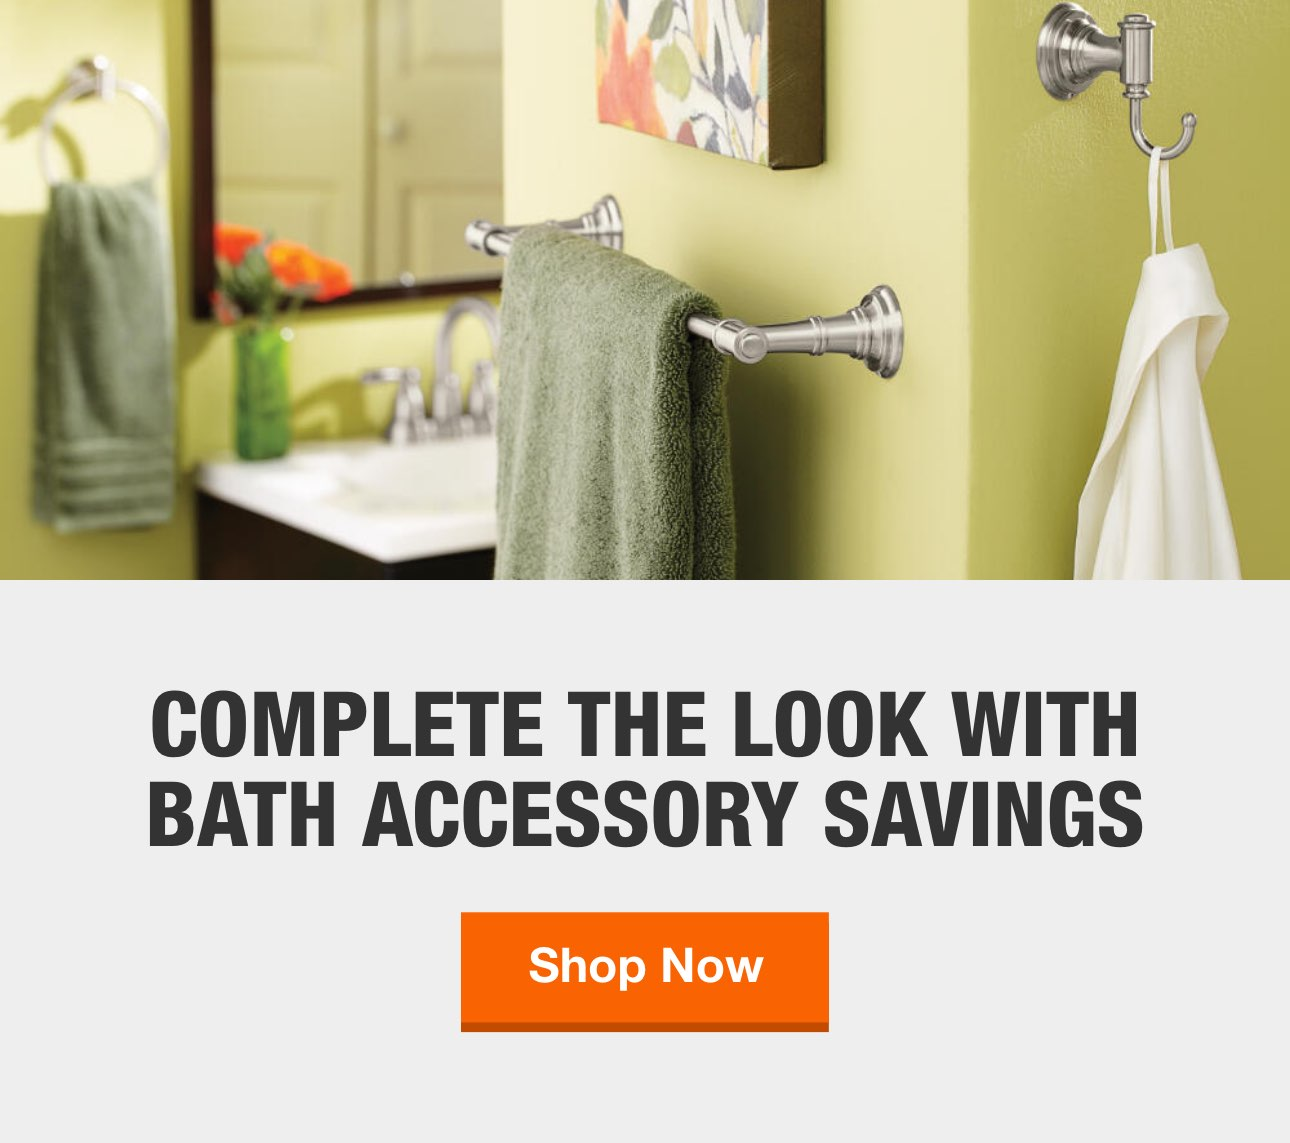 Bathroom Accessories – The Home Depot